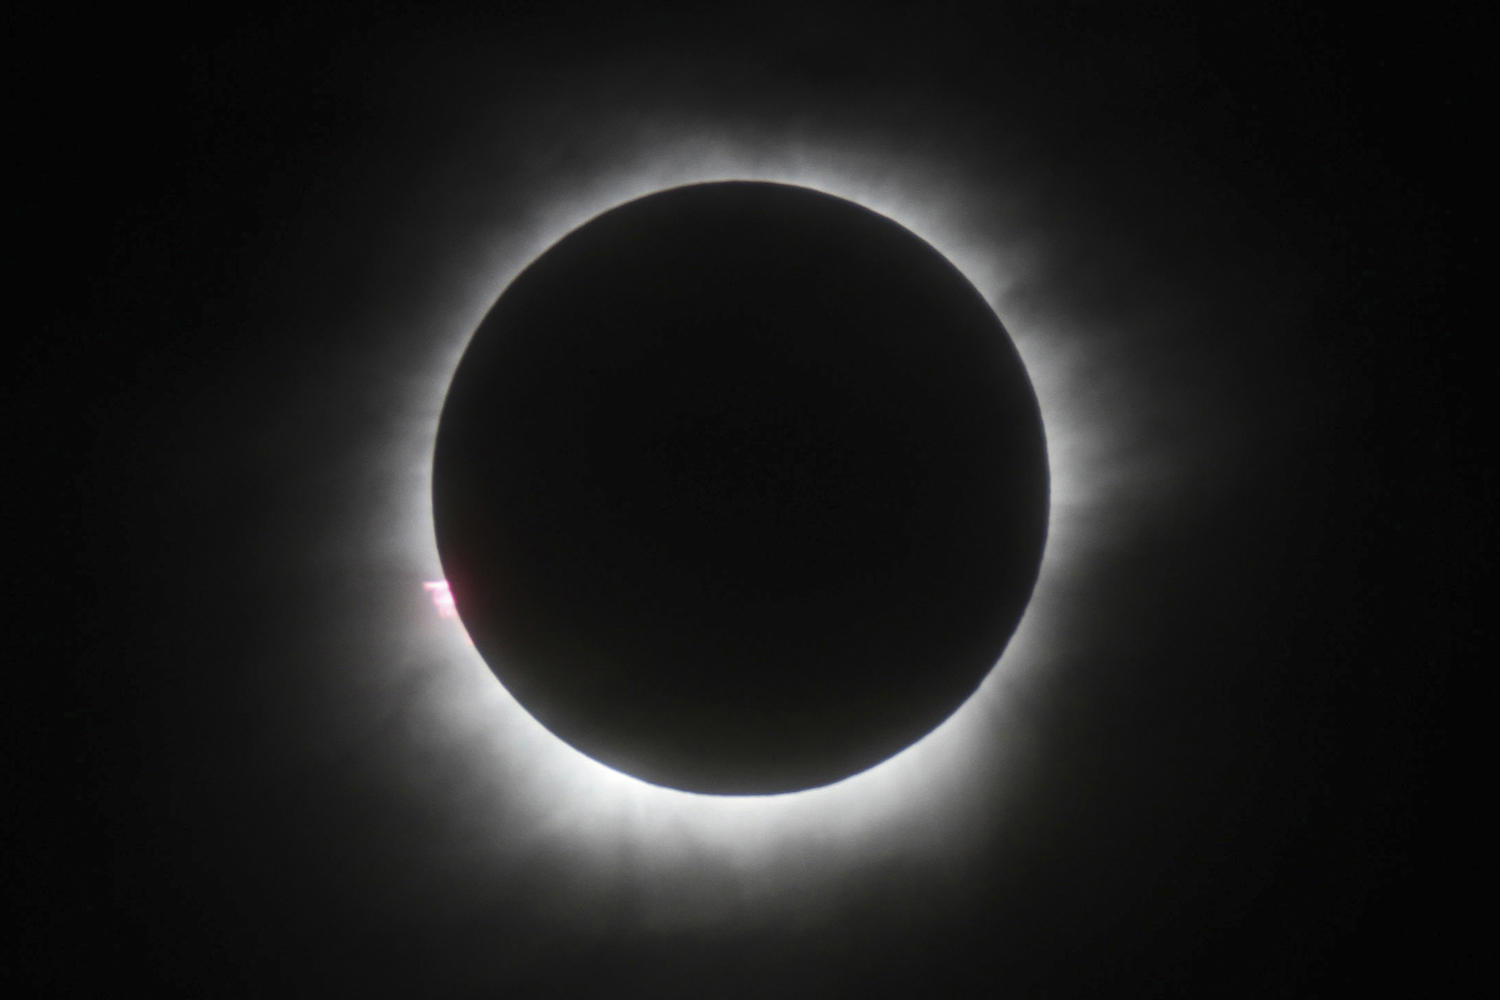 Eclipse will cut down on solar energy